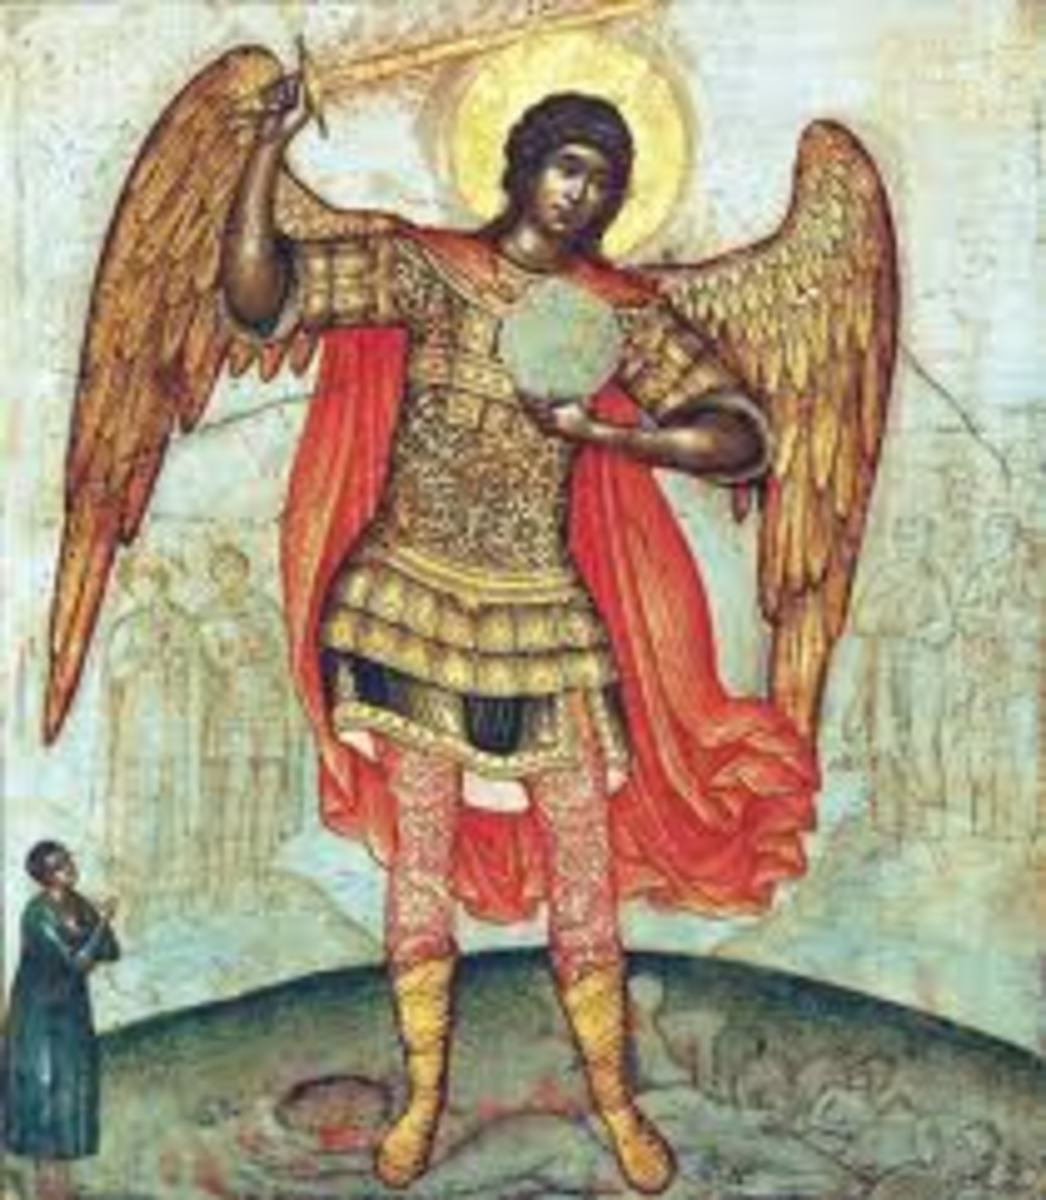 Archangel Michael, commander supreme of the angles of God, in the name of God defeats Lucifer who was then sent by God to guard the negative forces of the universe at the entrance of the abyss